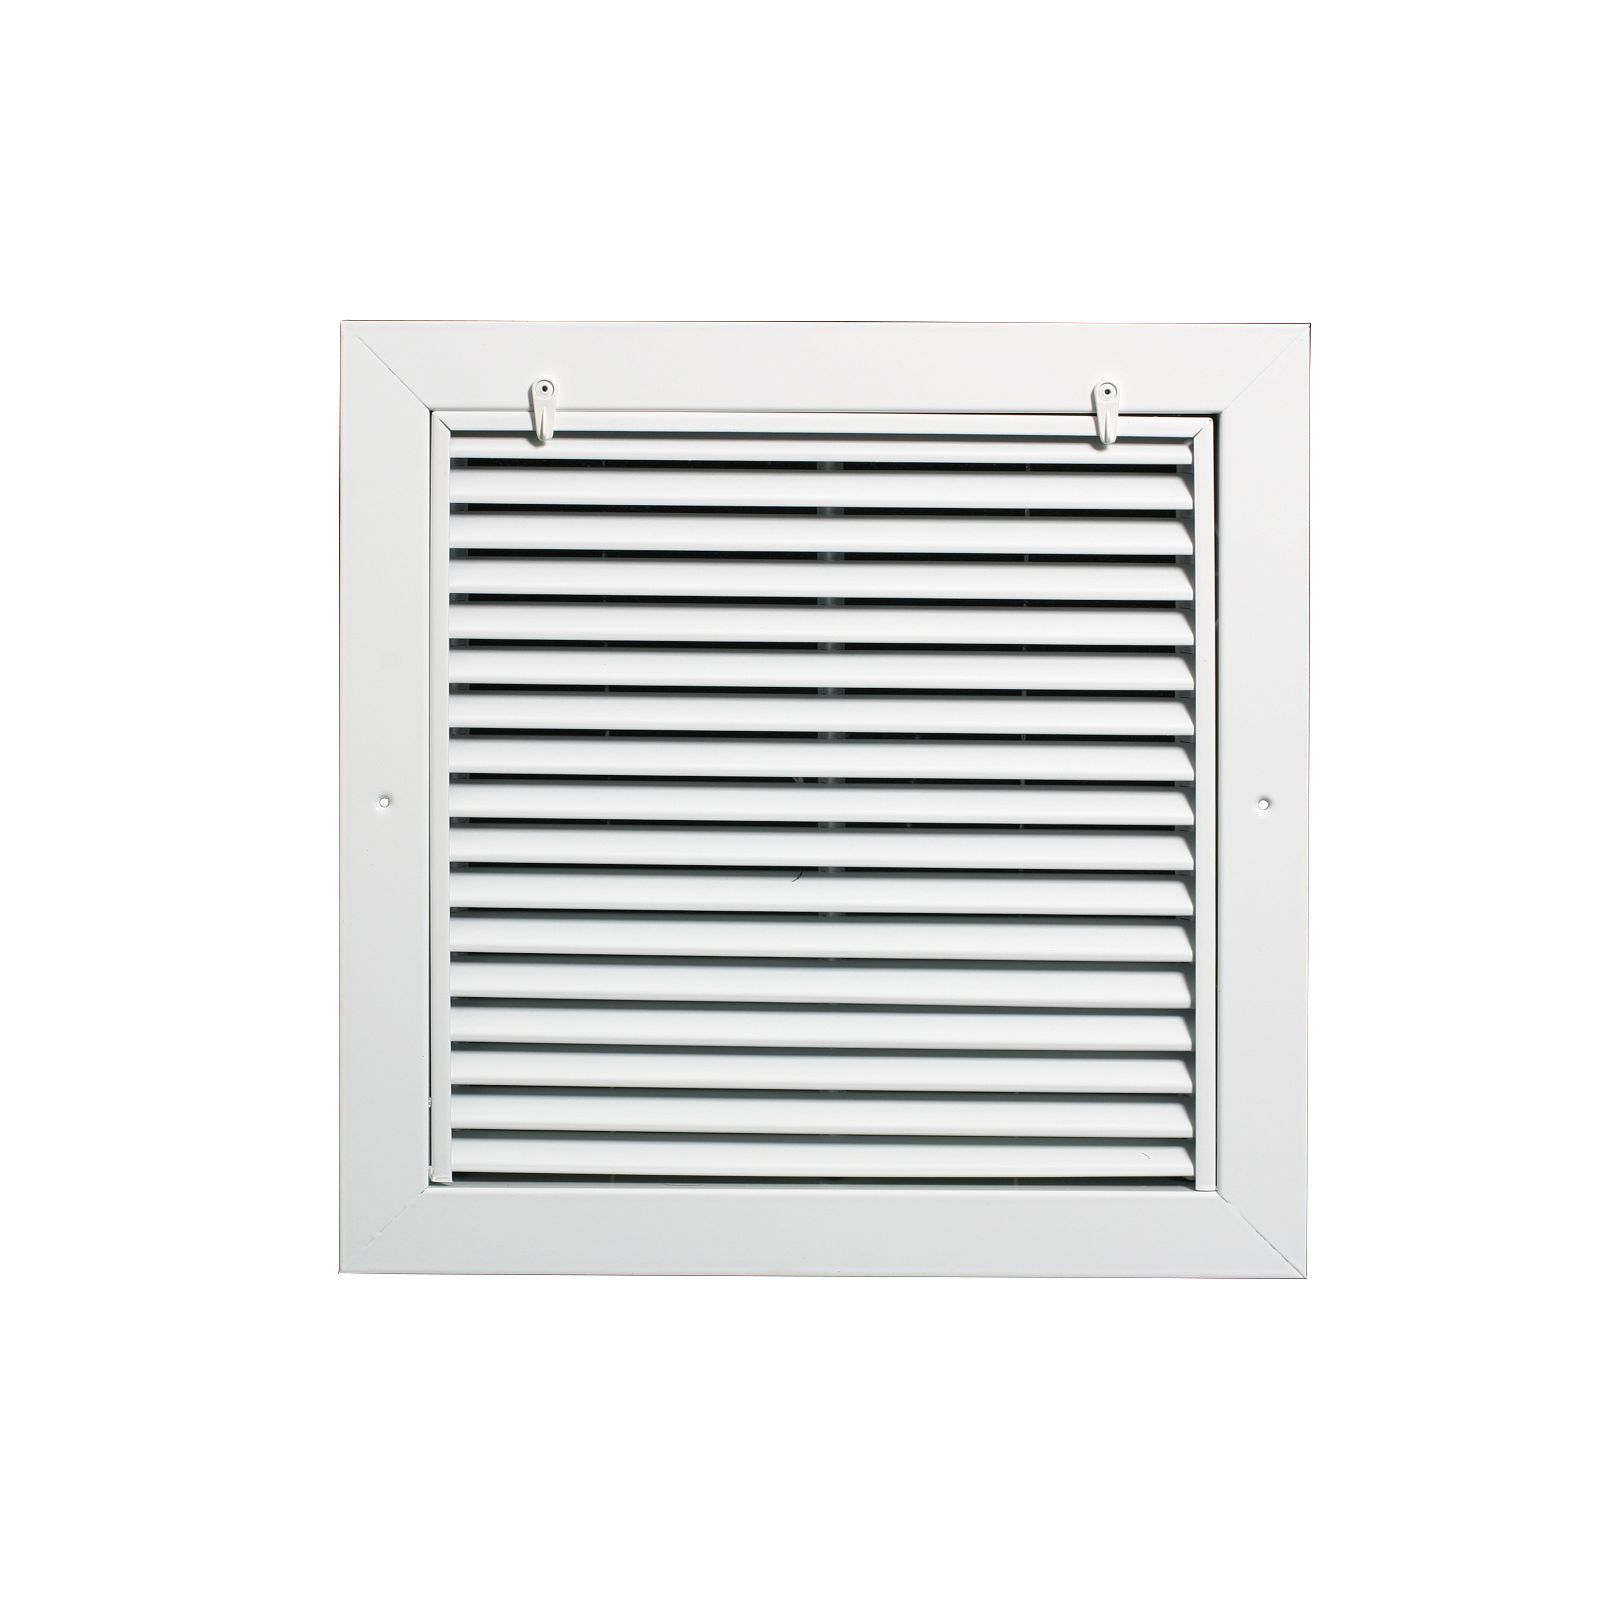 "Grille Tech RAFFS2814 - Aluminum Return Air Filter Grille, Filter Size 28"" X 14"" White"